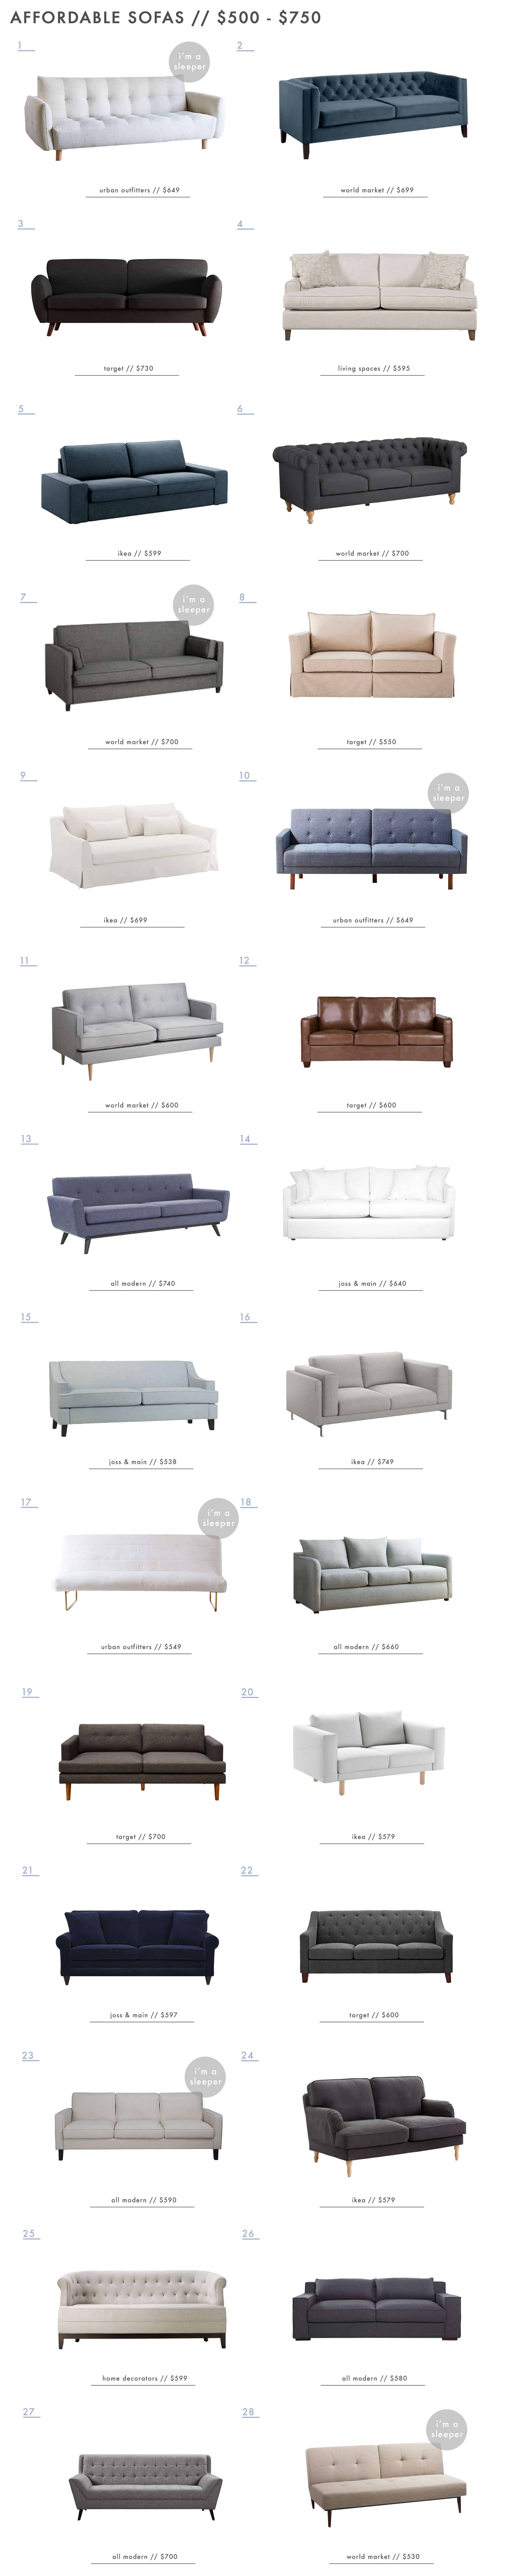 Emily Henderson Afforfable Sofas Roundup 500 To 750